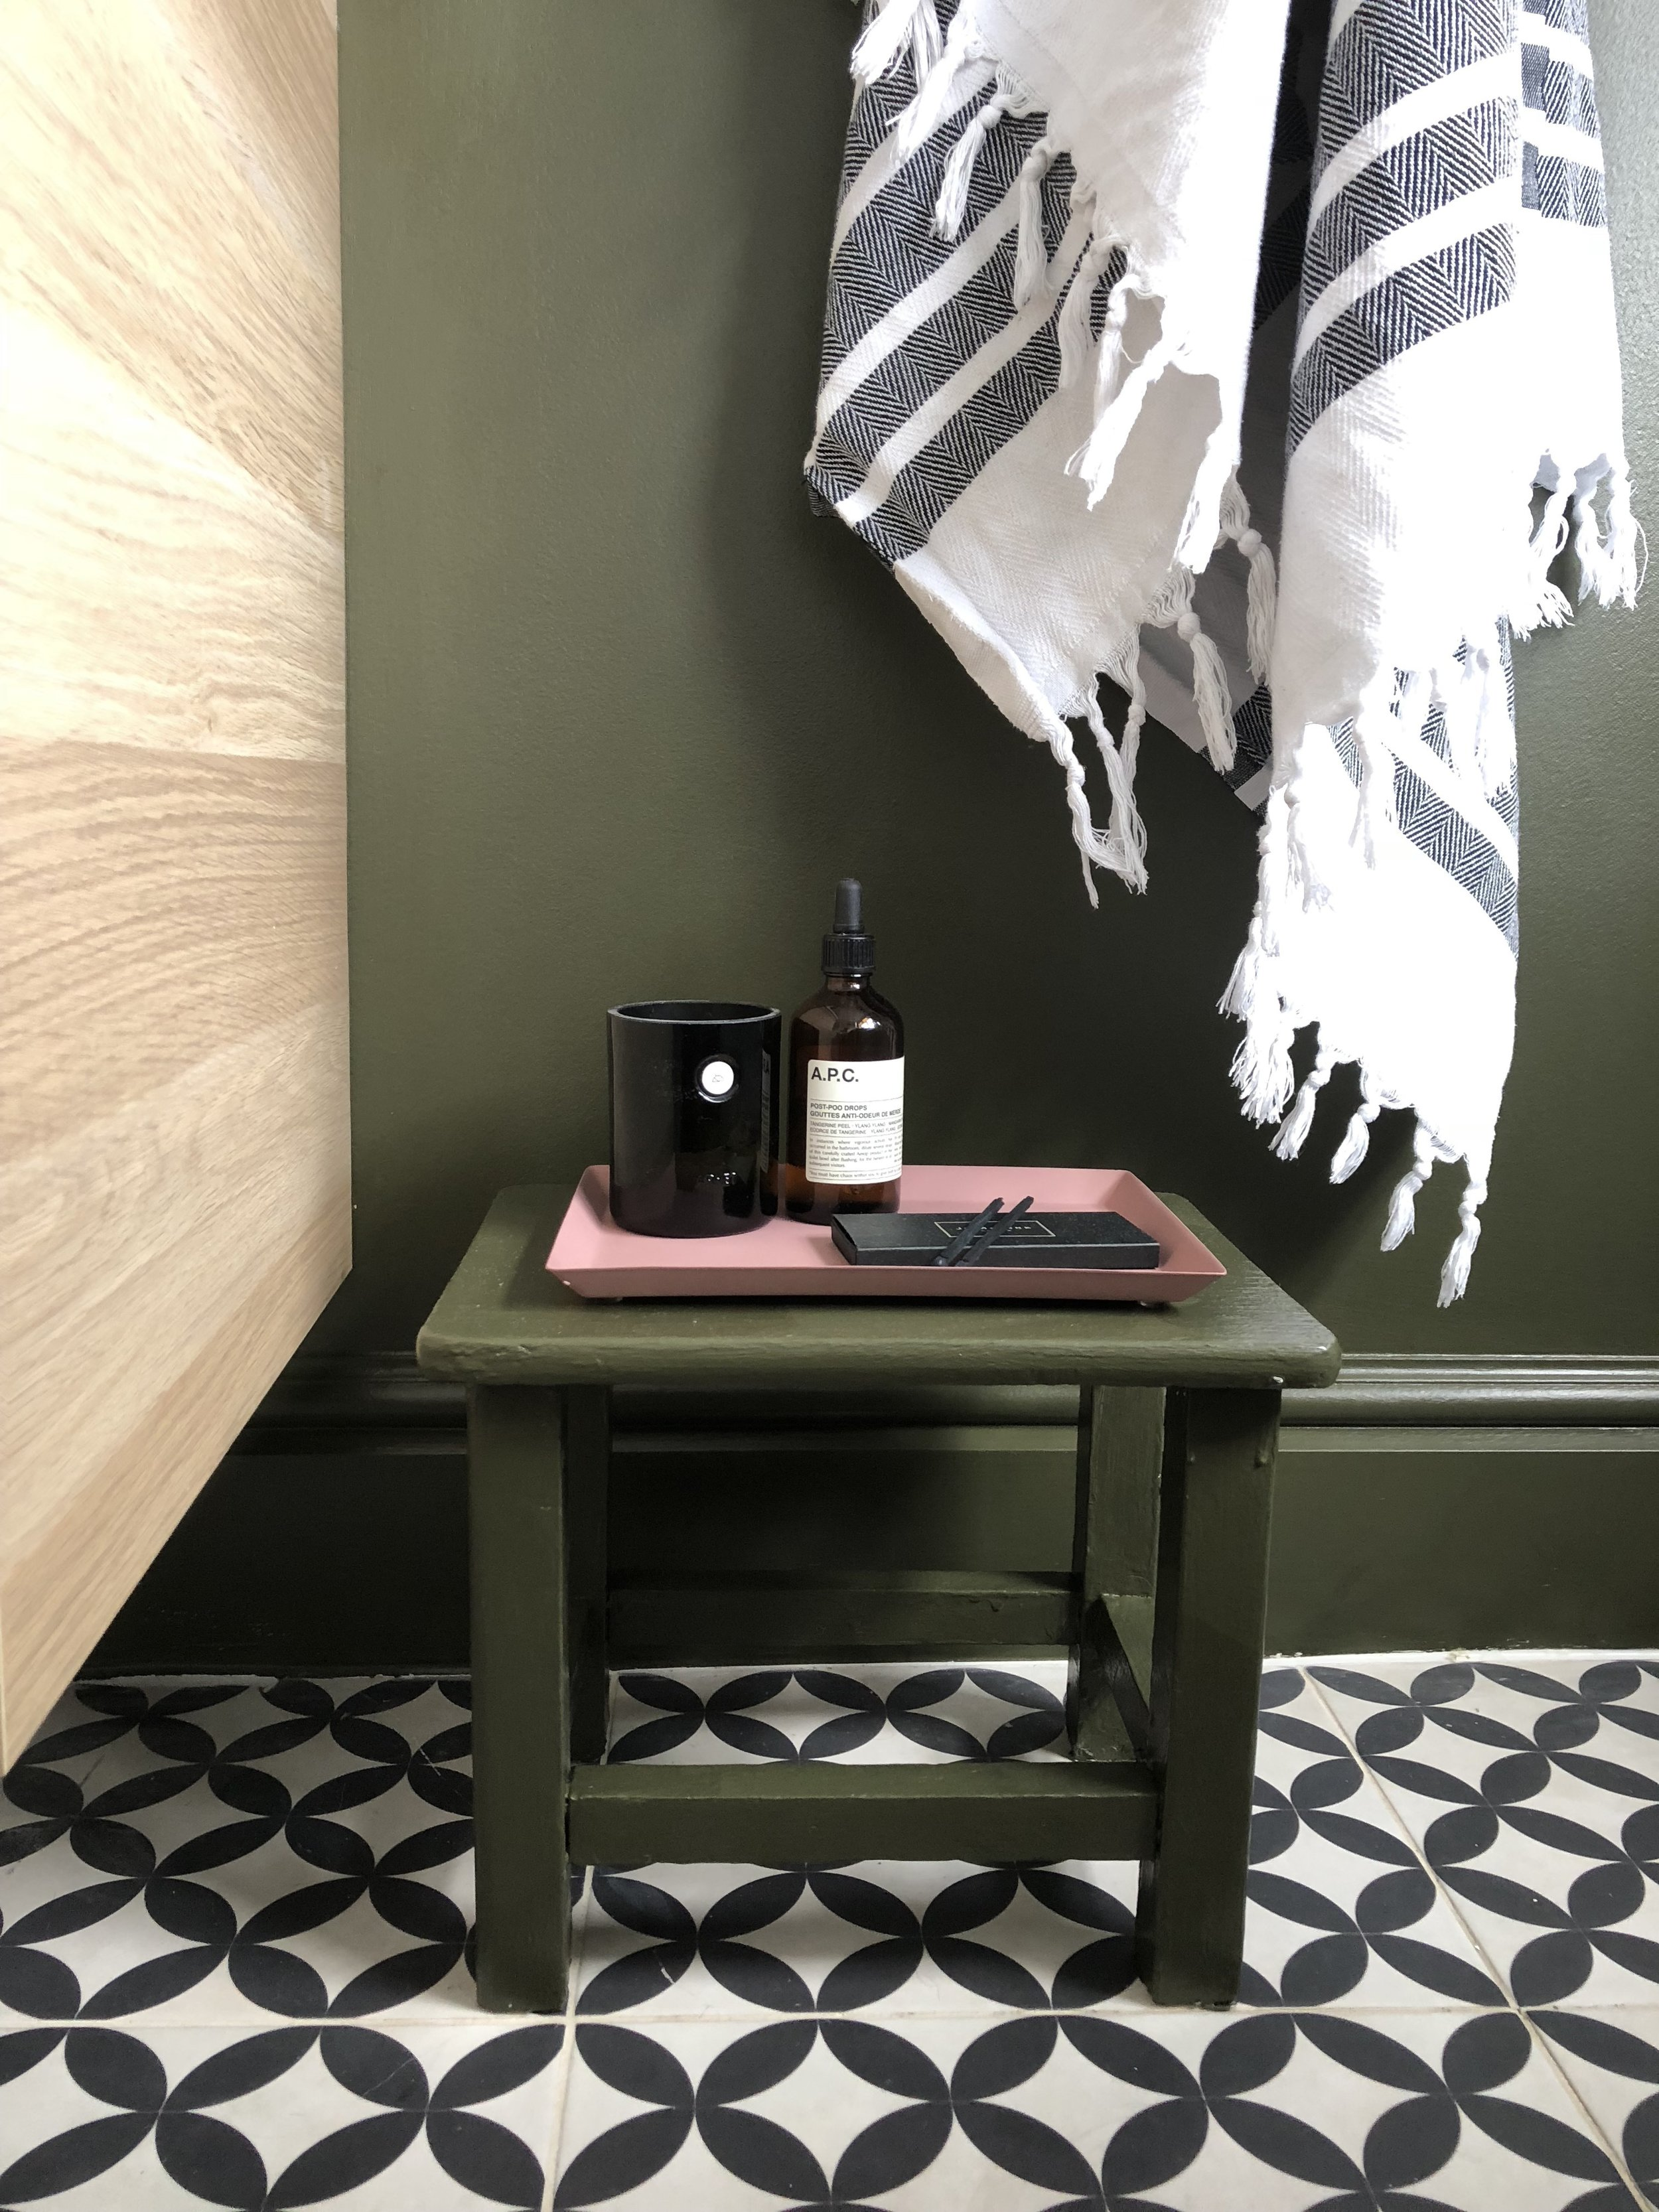 I had some of the woodwork paint left over so I couldn't resist updating this little stool in the same colour. It looks perfect with this H&M Home pink tray and my Arket candle and of course Aesop's Poo Drops!